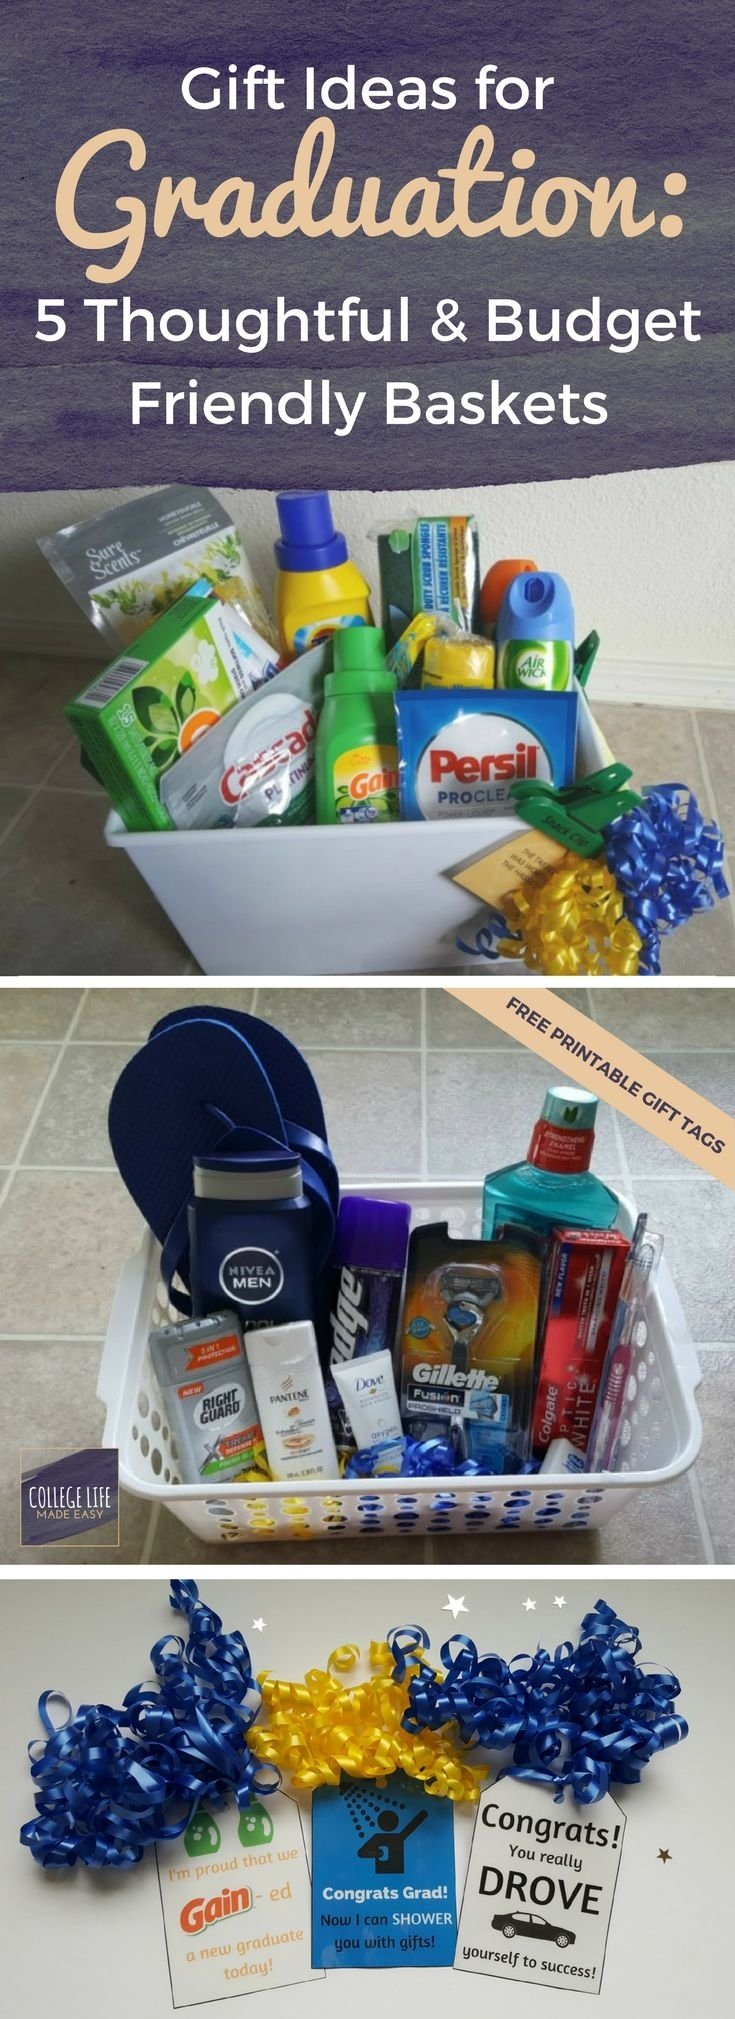 10 wonderful christmas list ideas for college students 157 best graduation gift ideas images on pinterest - College Student Christmas List